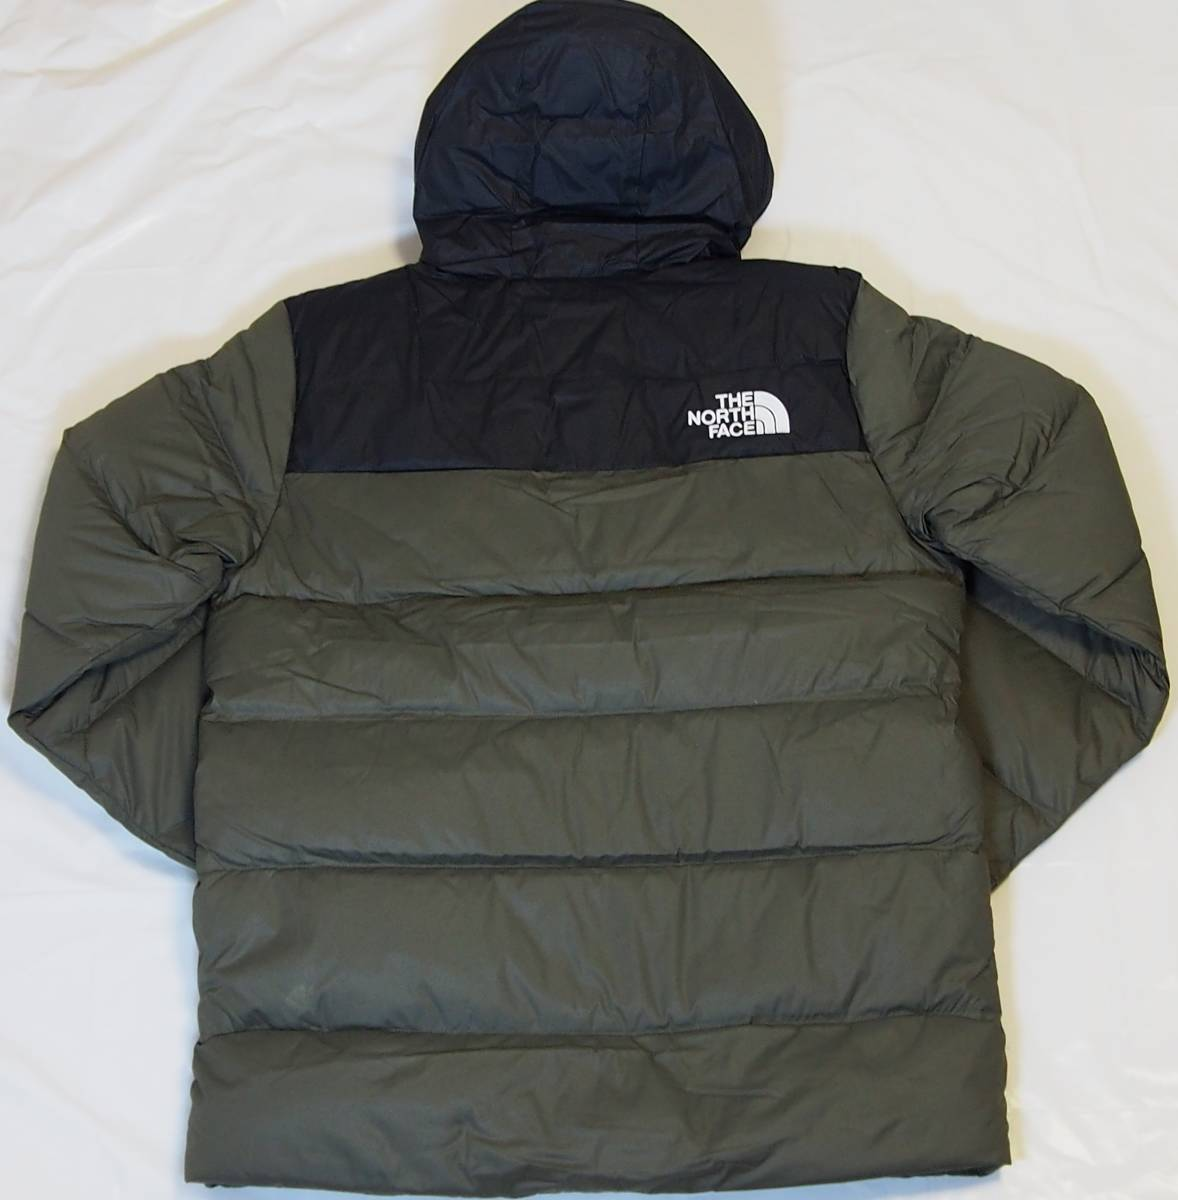 【USA購入、未使用タグ付】ノースフェイス UX ダウンジャケット M グリーン The North Face UX Down Parka TNF BLACK/NEW TAUPE GREEN_画像3